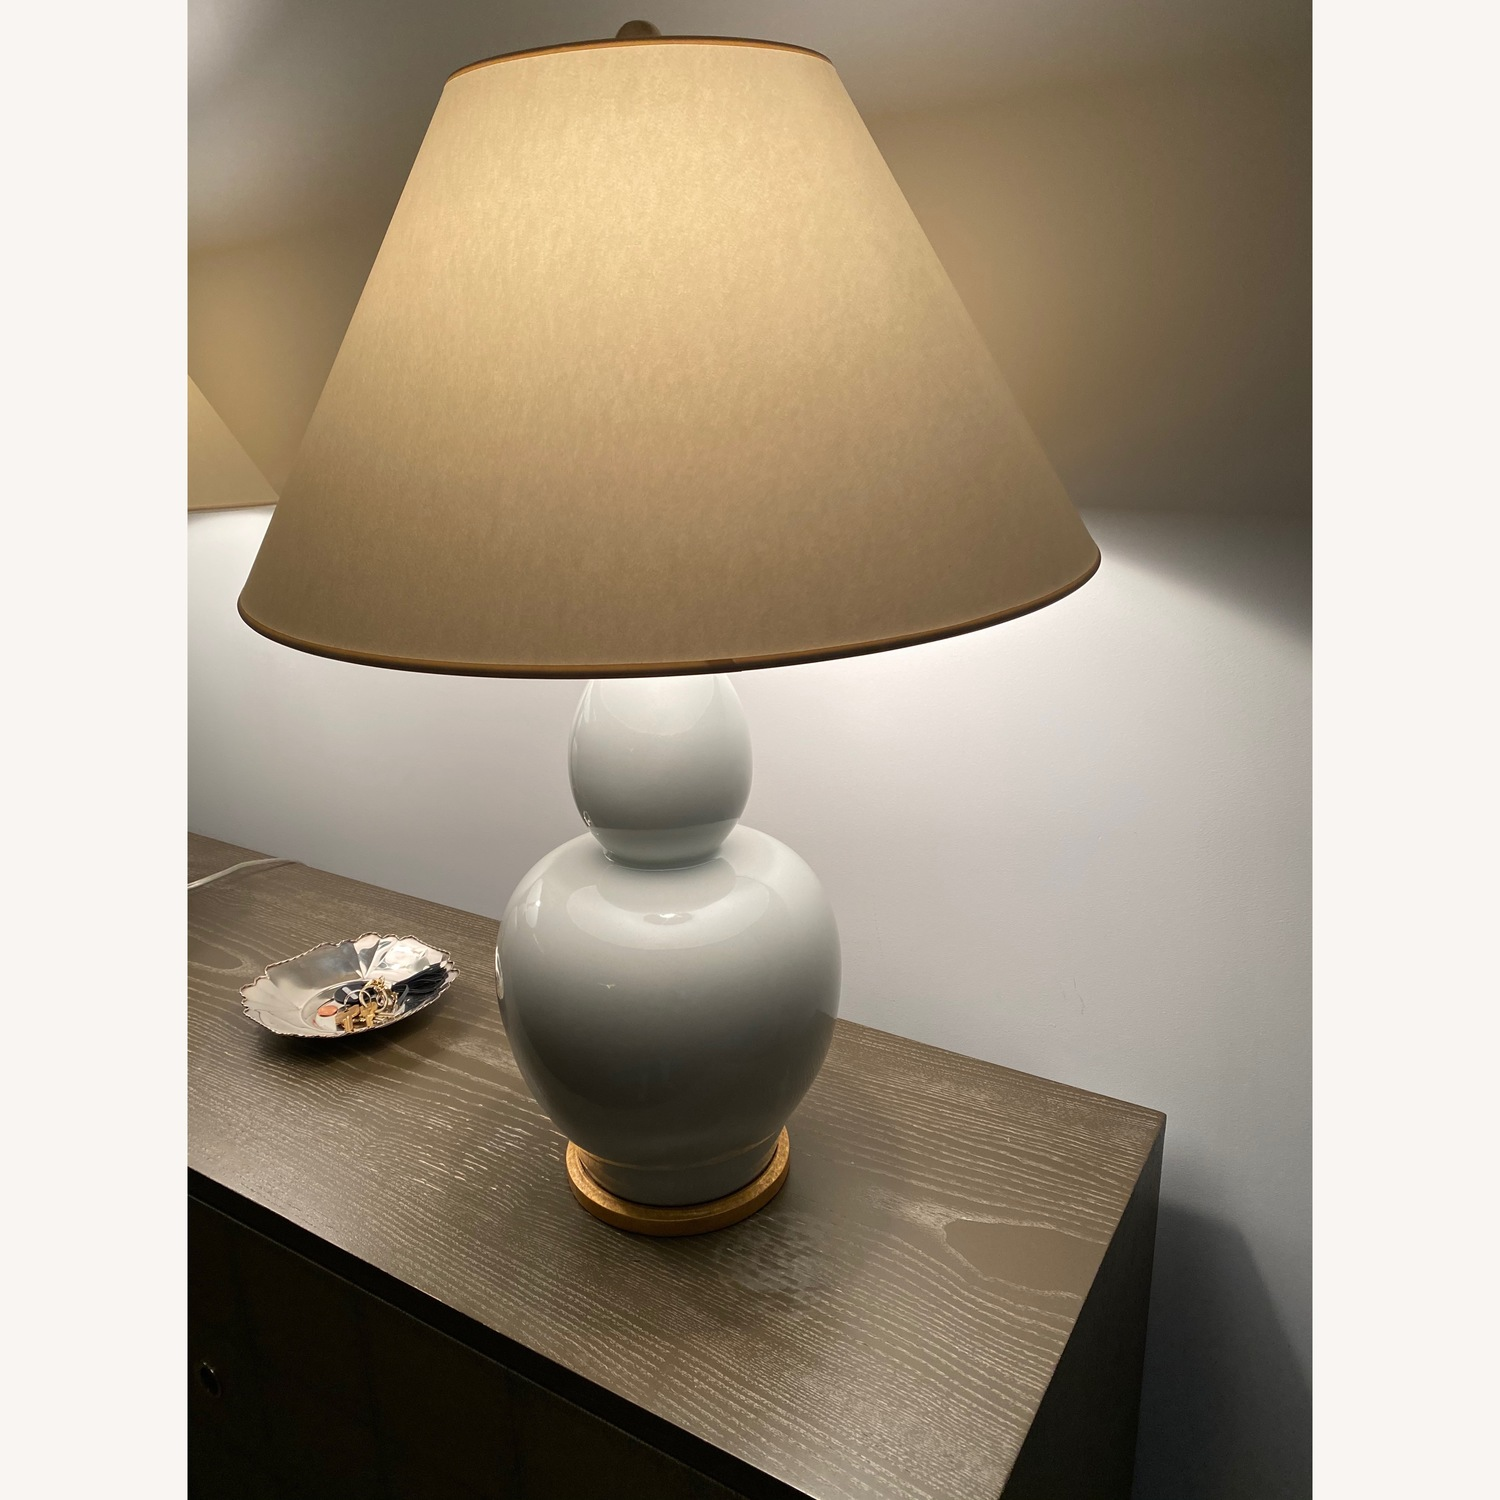 Circa Lighting Yue Double Gourd Table Lamp Set of 2 - image-3